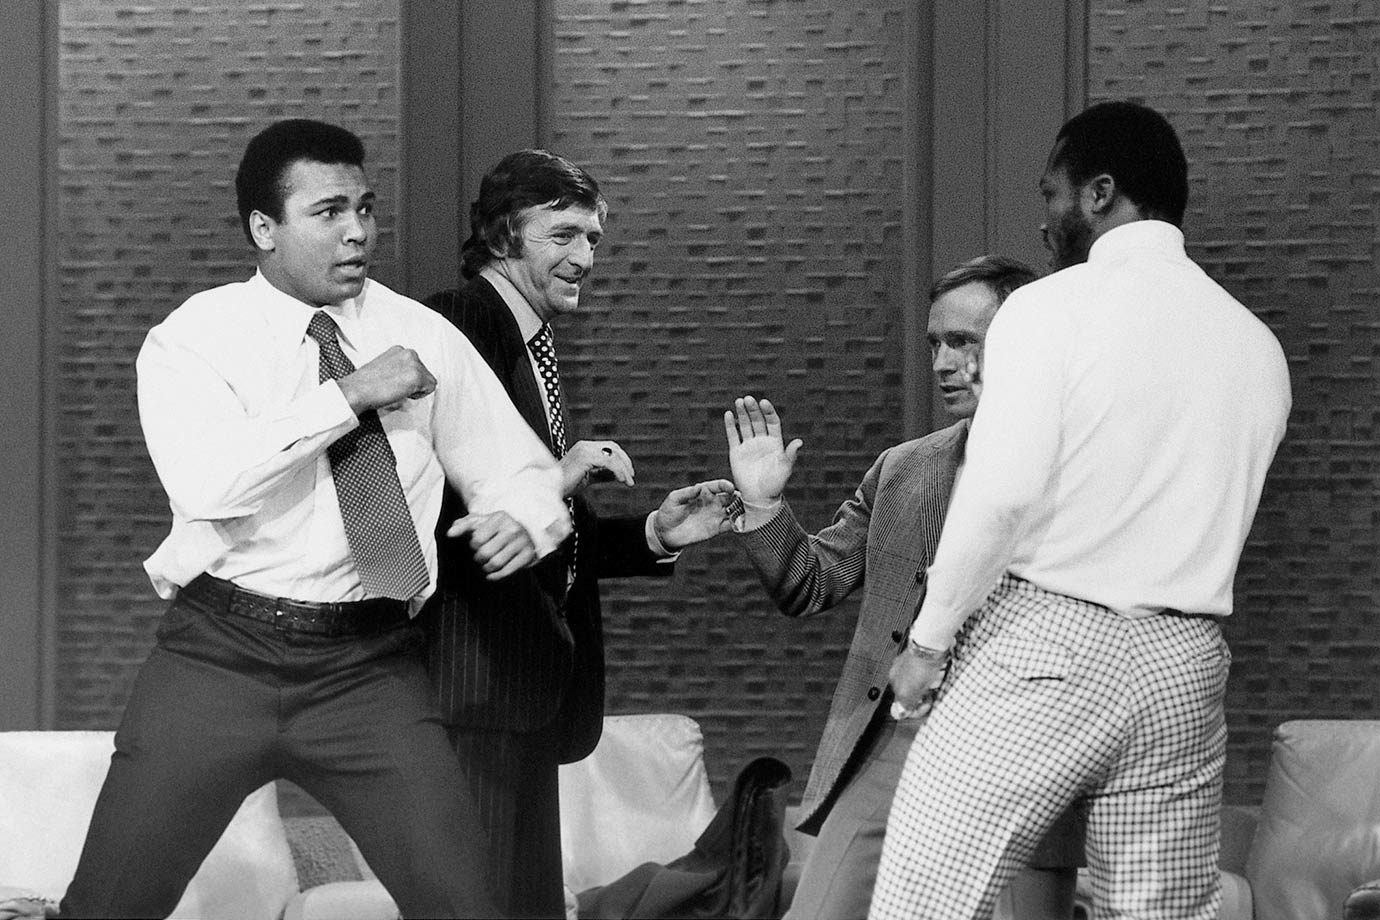 Ali and Joe Frazier fight on the set of The Dick Cavett Show while reviewing their 1971 bout in advance of their 1974 rematch. Ali called Frazier ignorant, to which Frazier took exception. As the studio crew tried to calm Frazier down, Ali held Frazier by the neck, forcing him to sit down and sparking a fight. The television set fight amped up anticipation of their January 1974 bout.